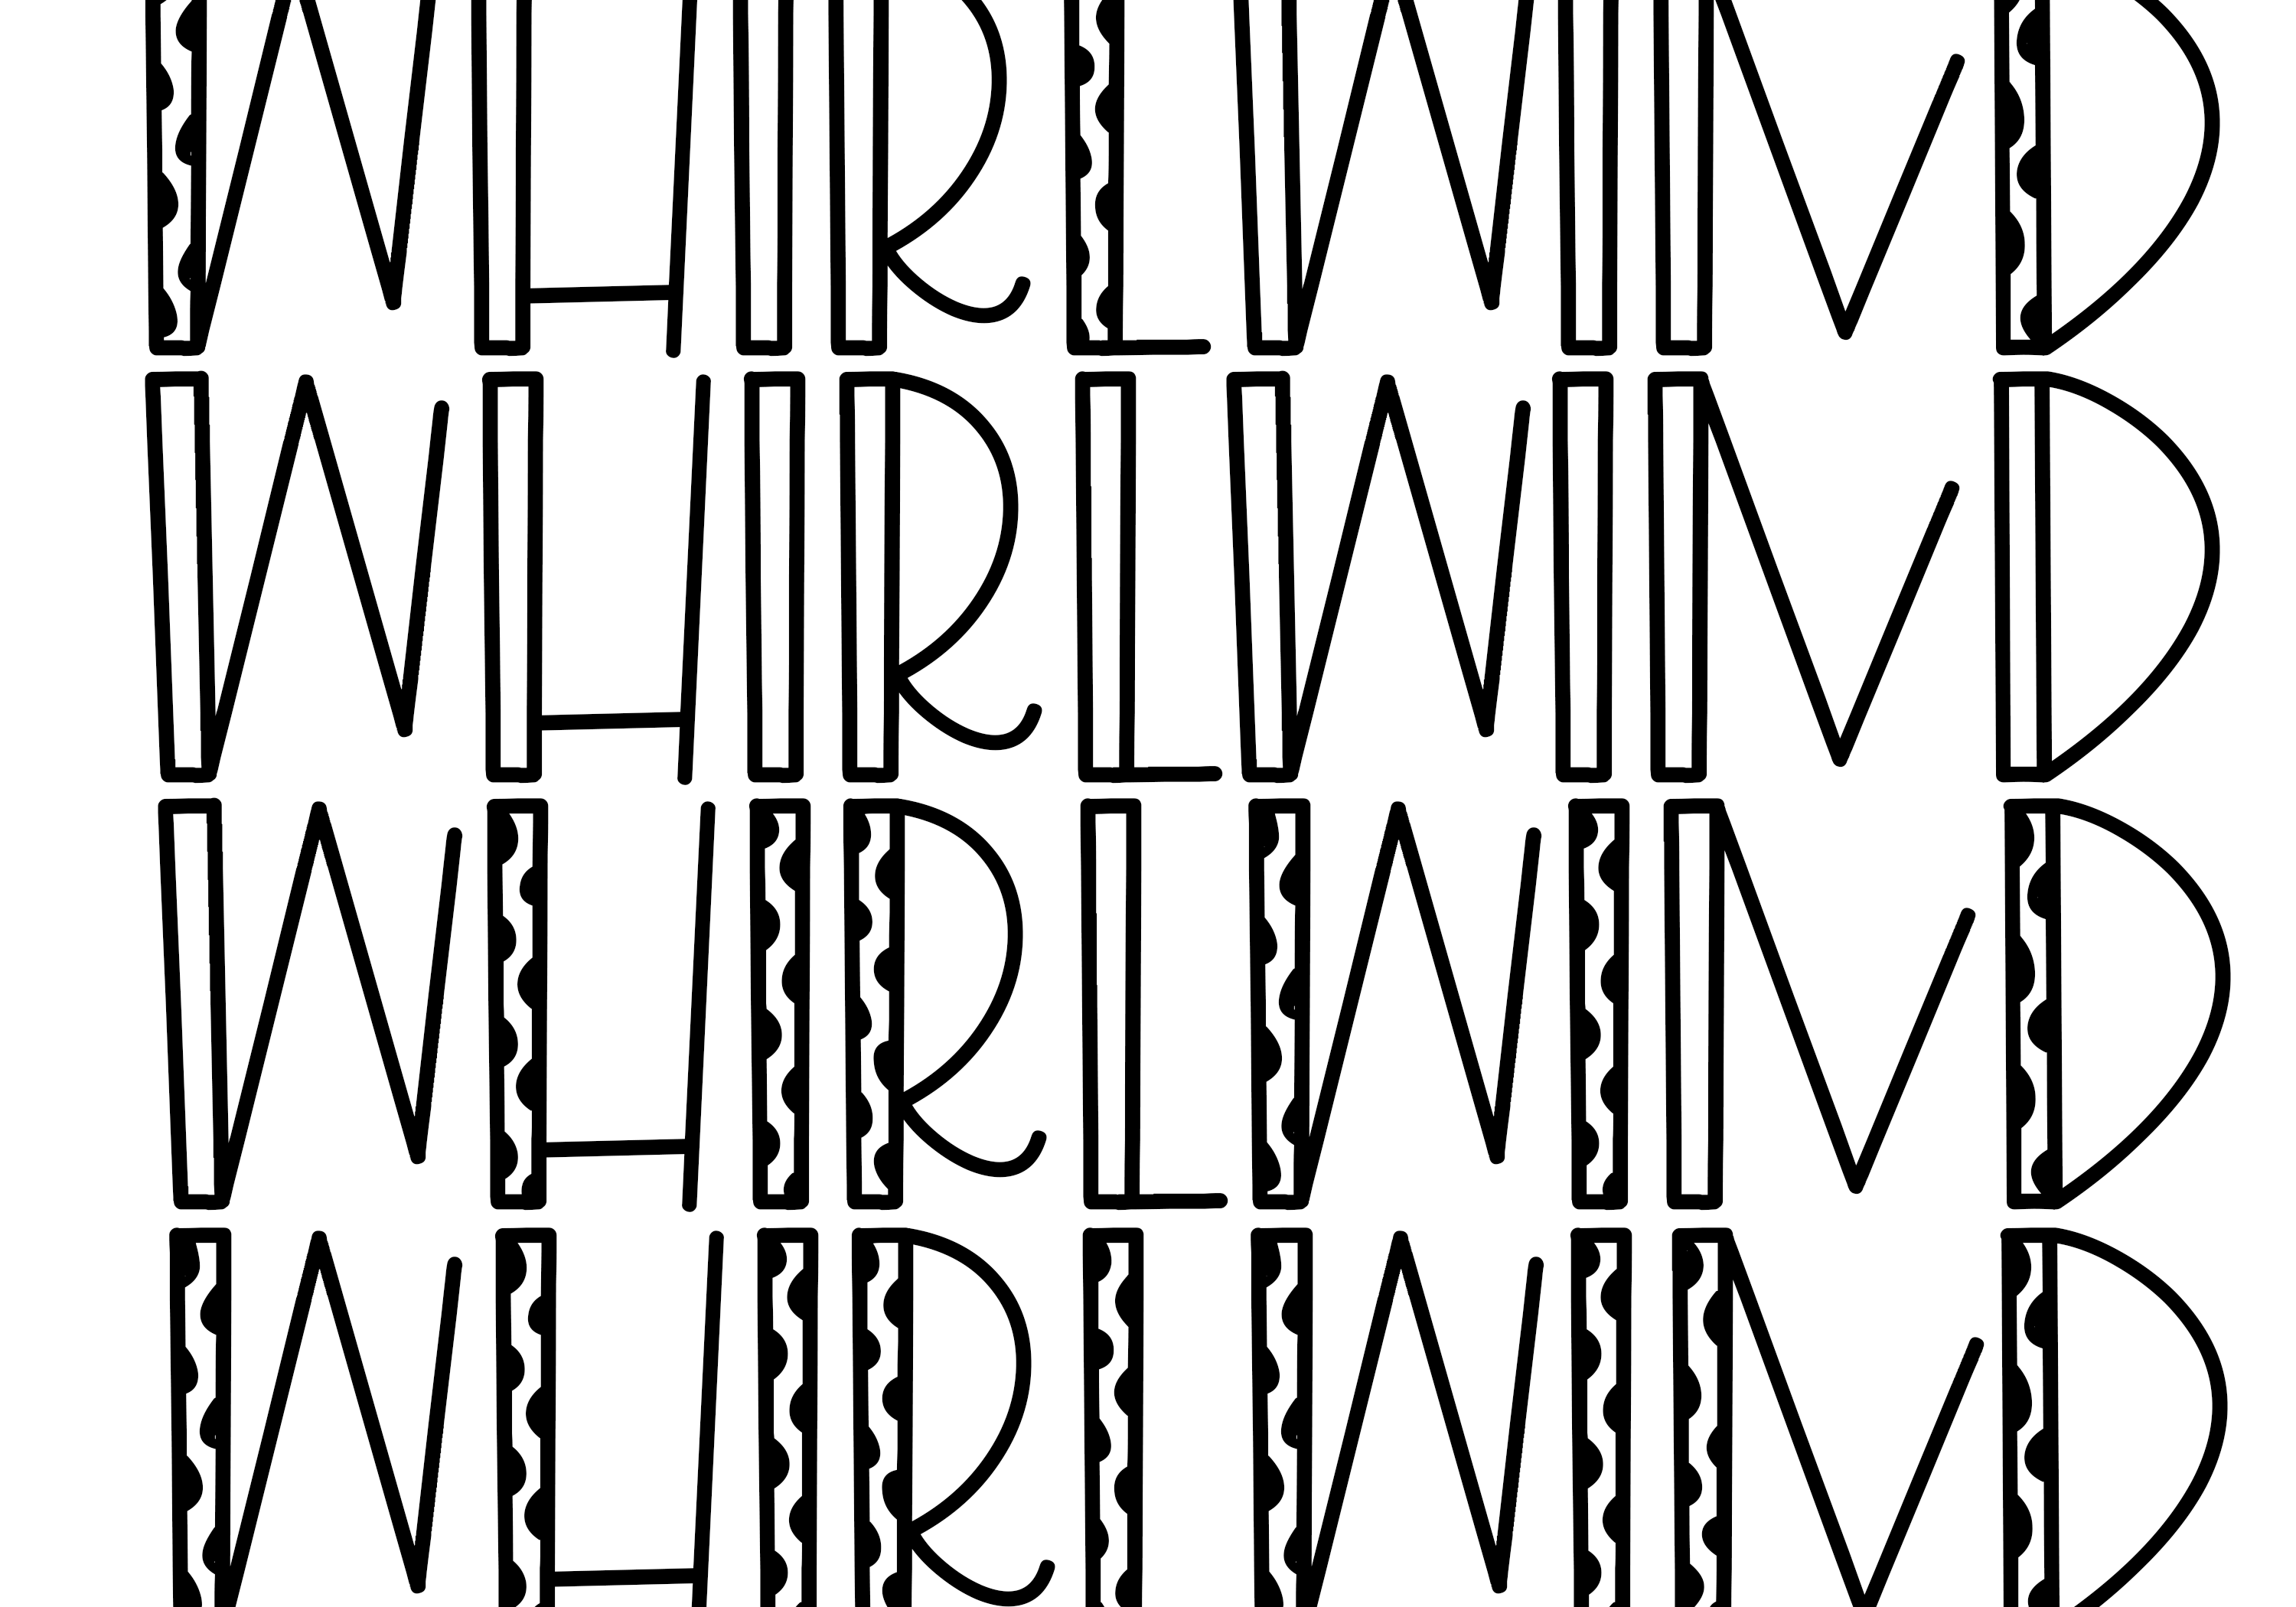 Whirlwind - A Fun Handwritten Font example image 4